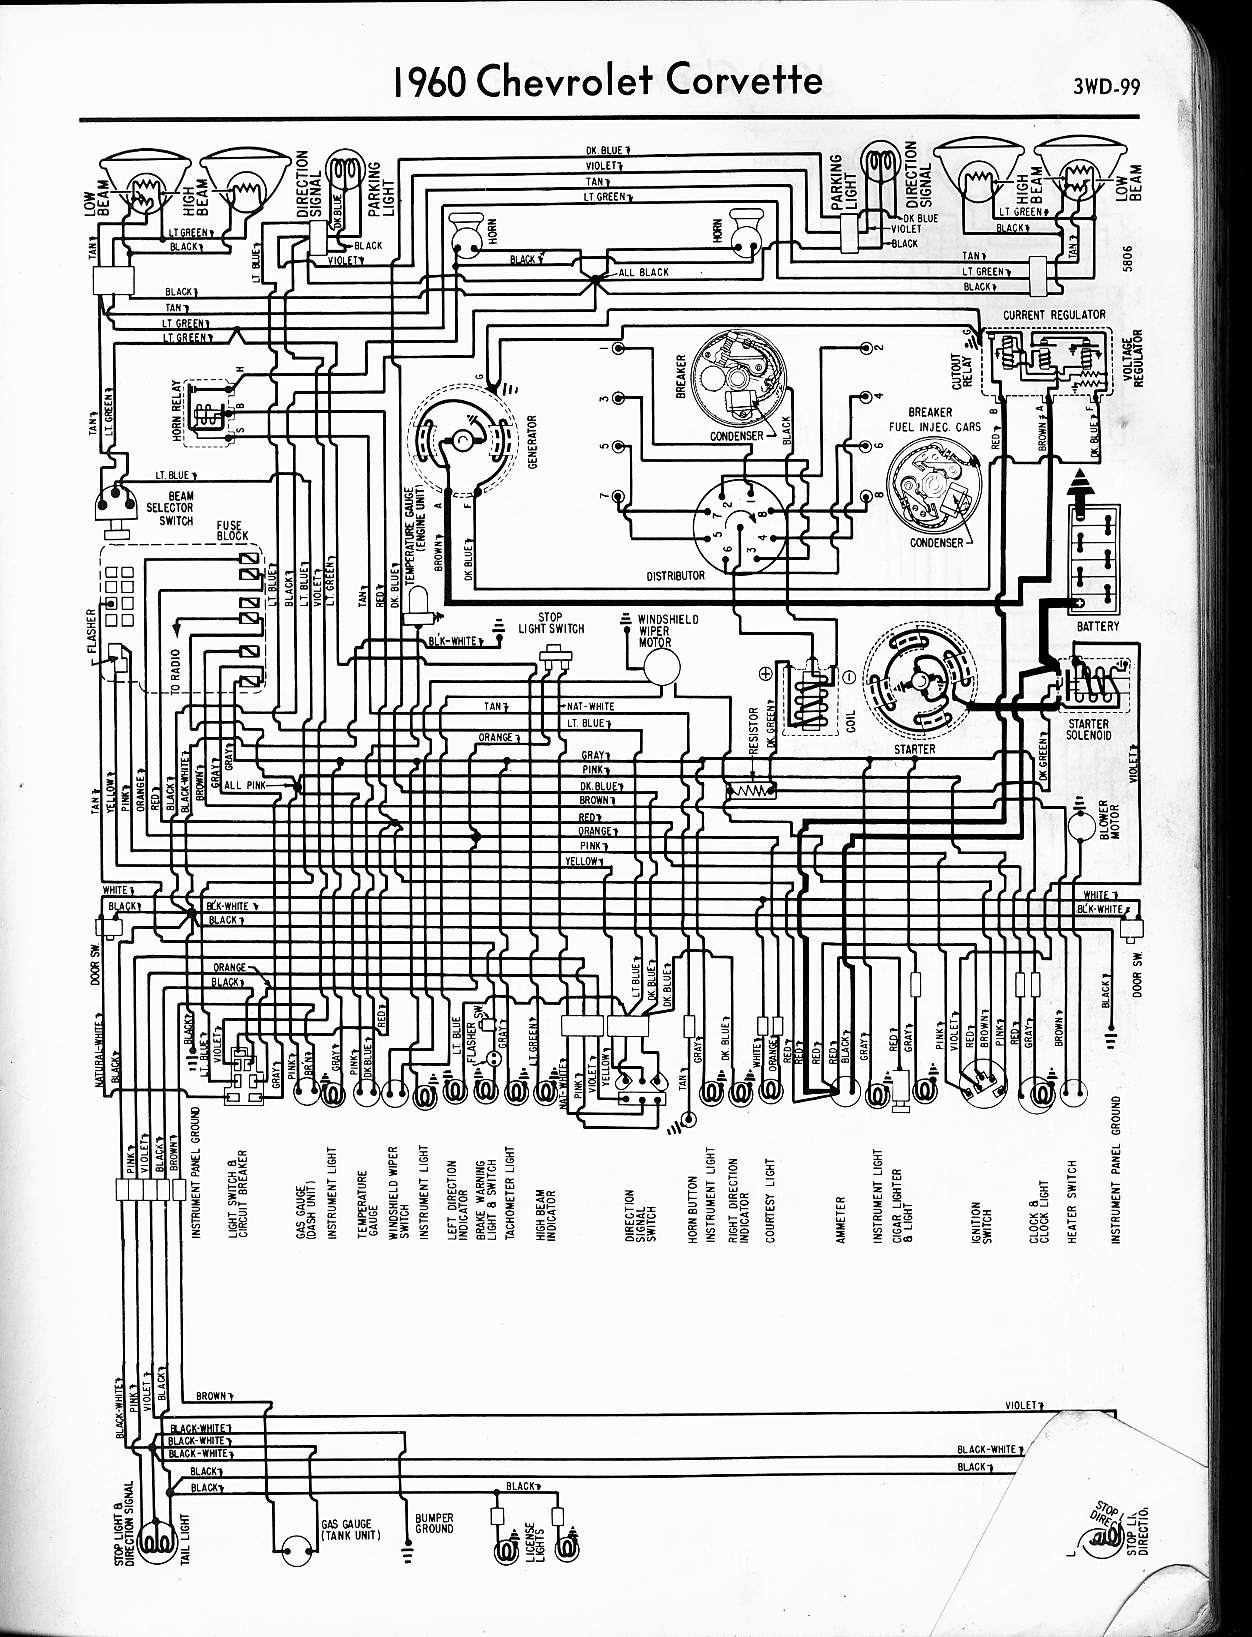 MWireChev60_3WD 099 57 65 chevy wiring diagrams 1960 corvette wiring diagram at fashall.co